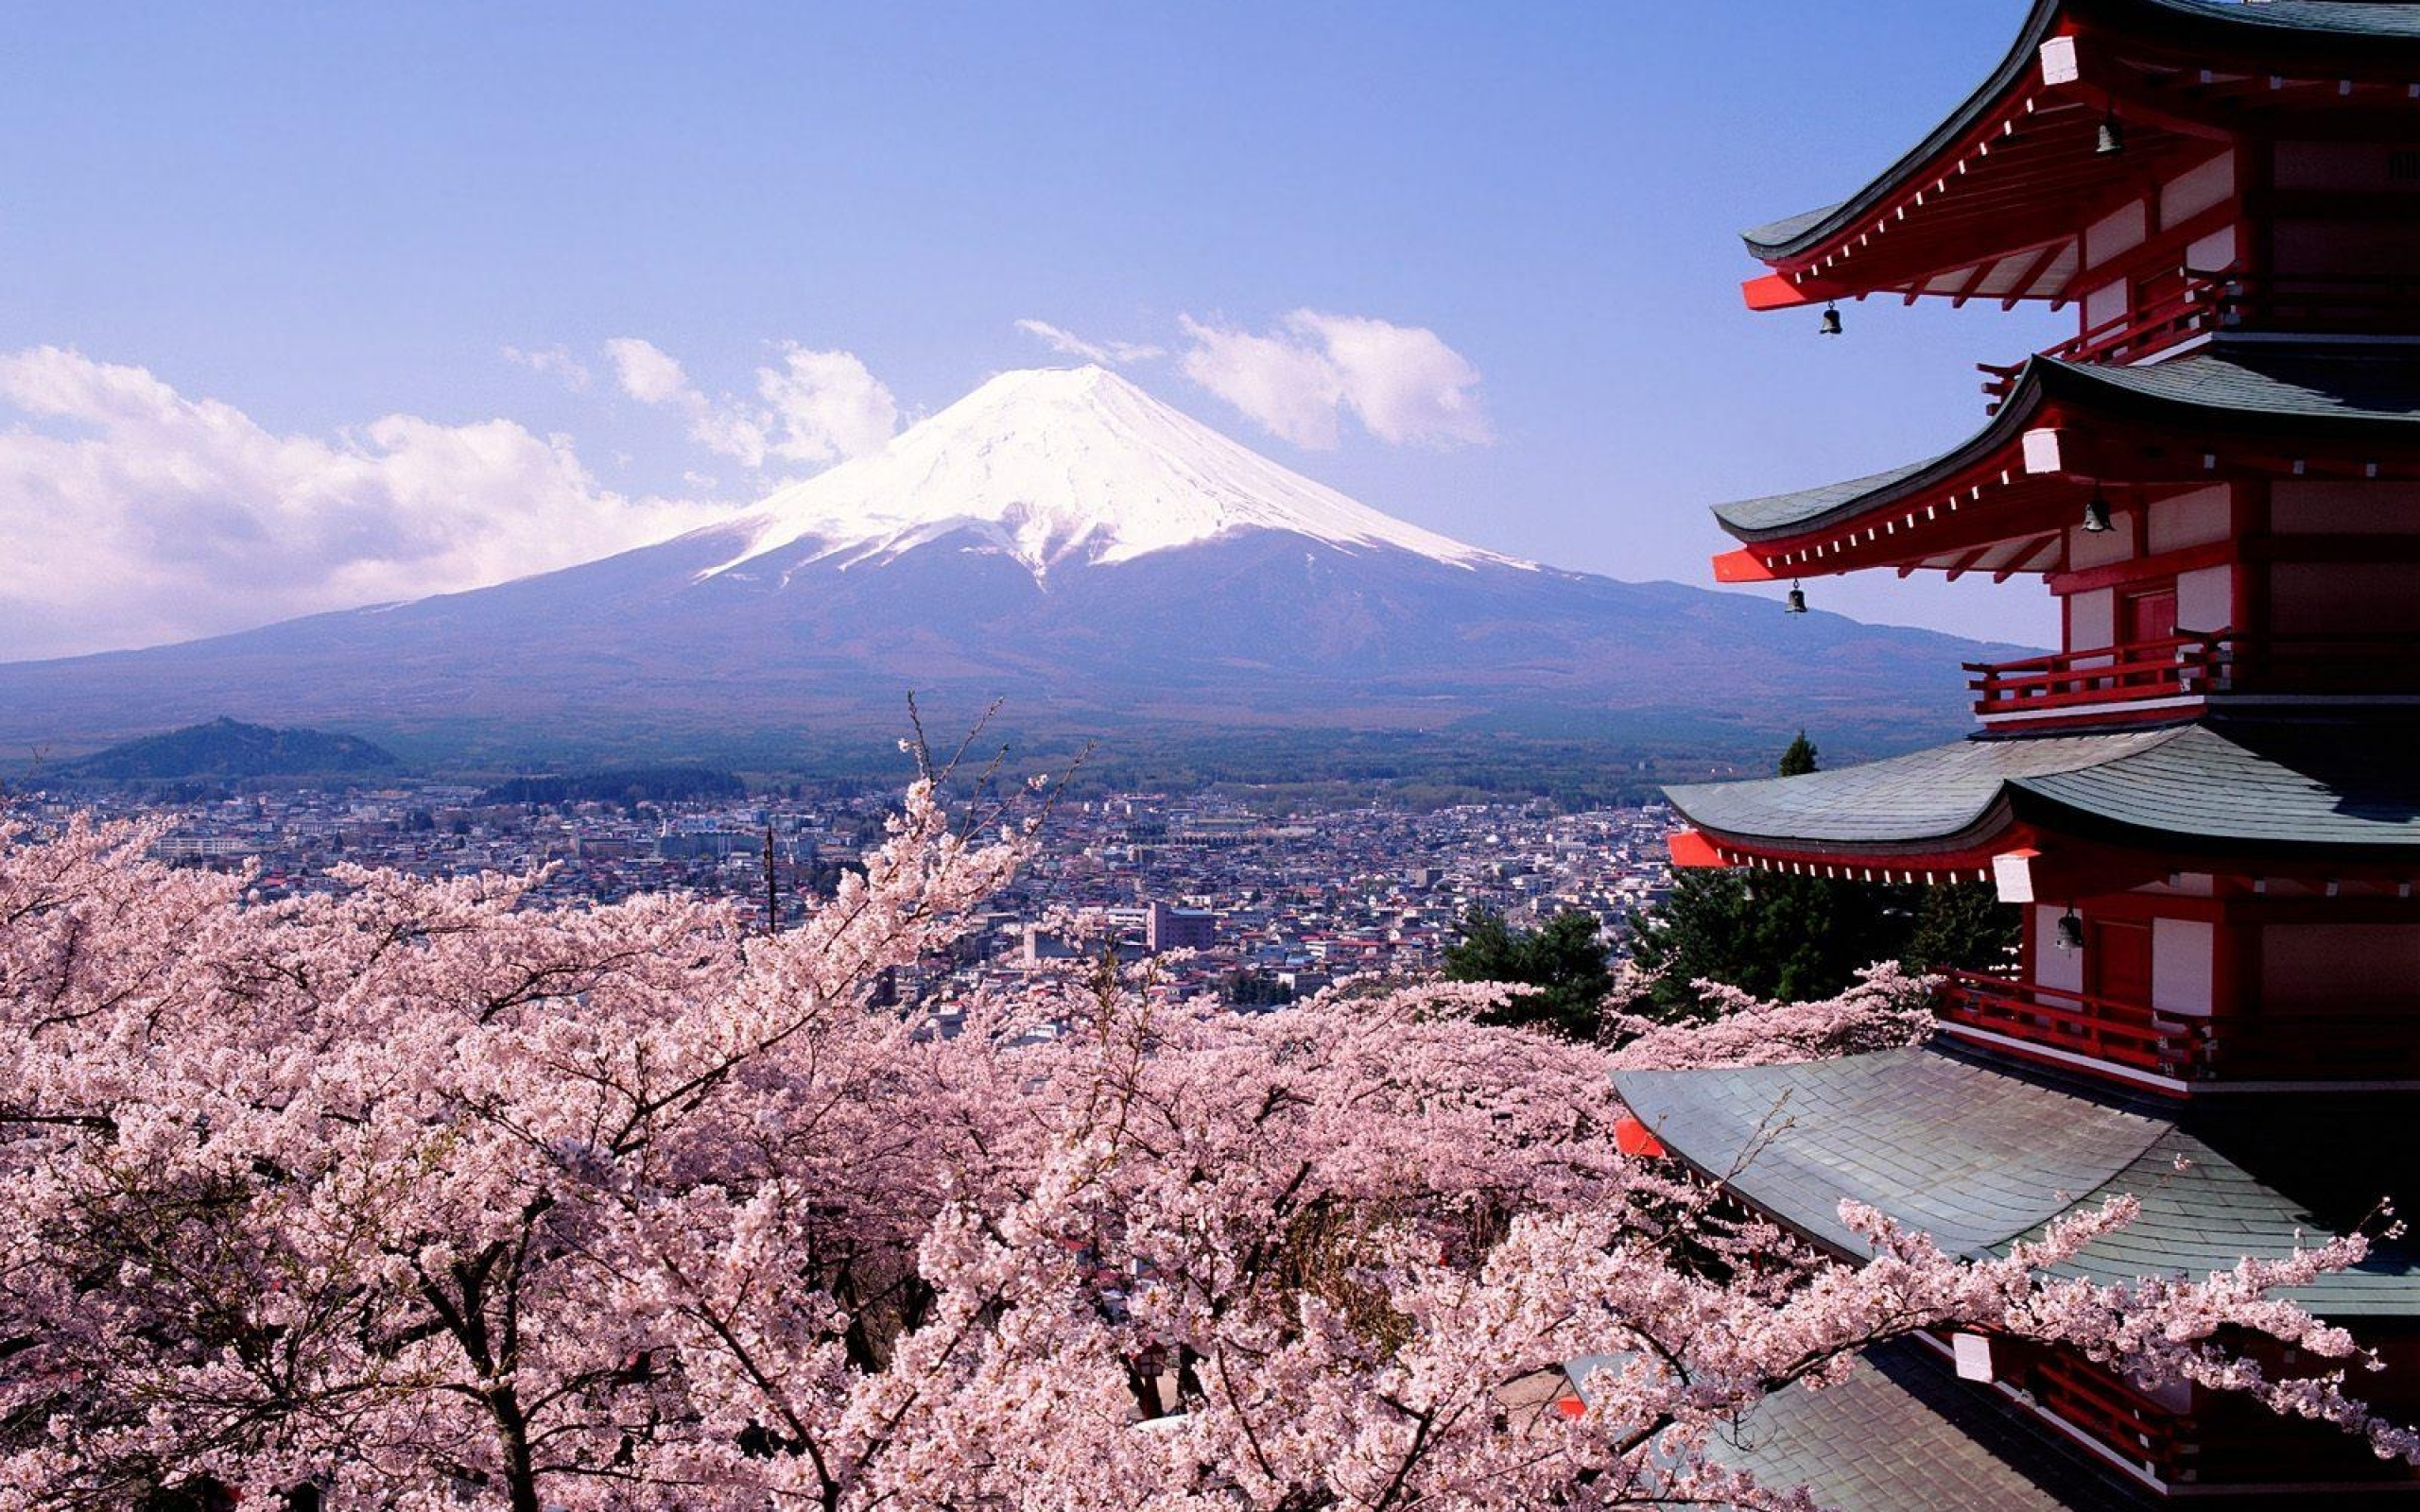 Tokyo Fuji Mountain Sakura Flower Wallpaper Background 2560x1600